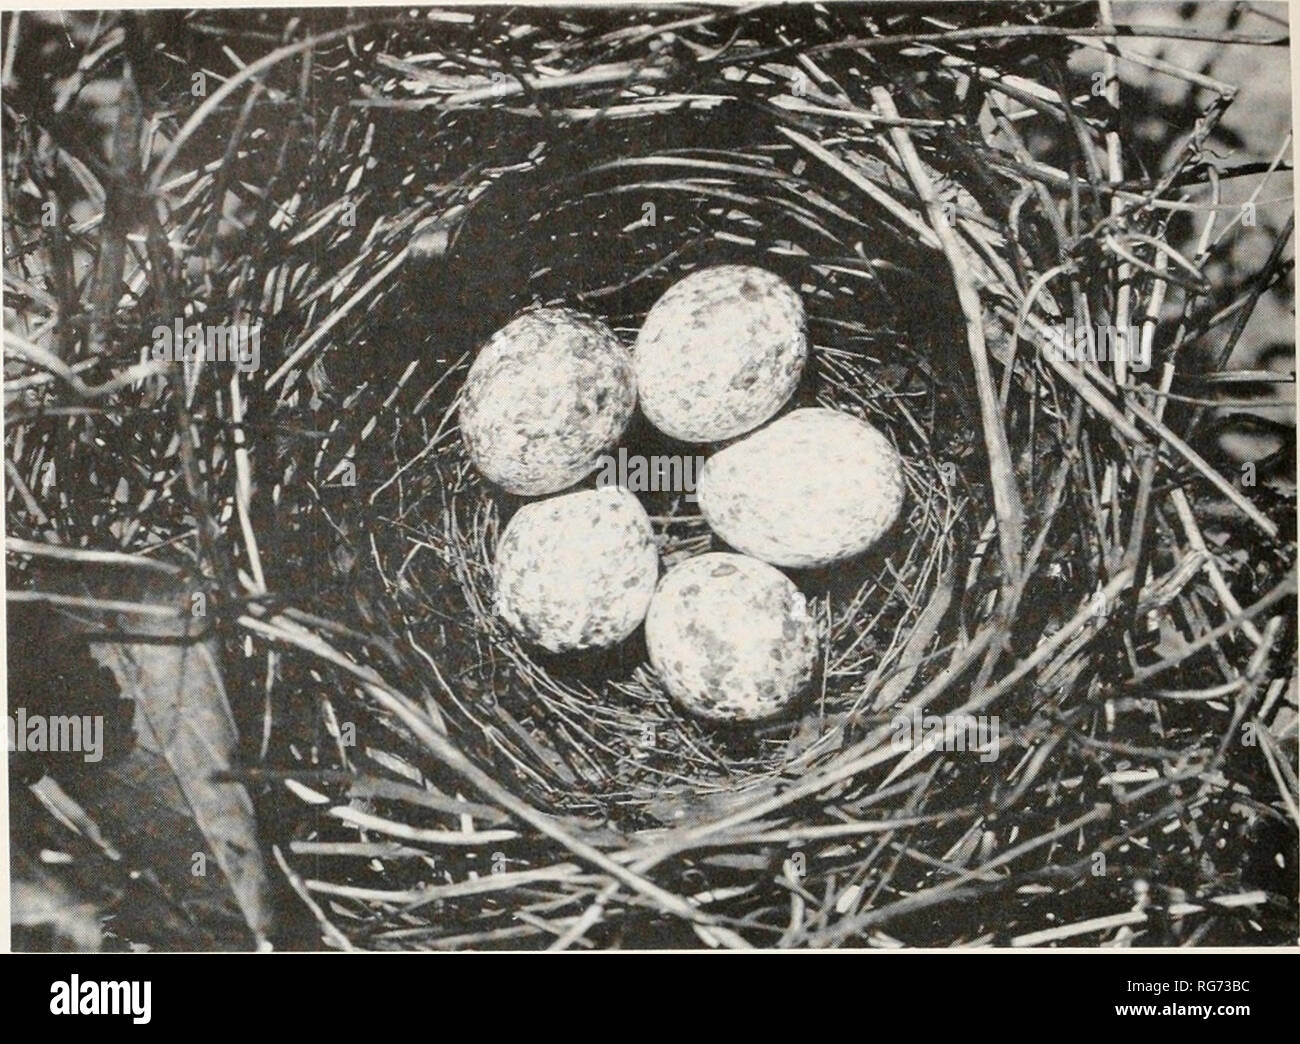 . Bulletin - United States National Museum. Science. U.S. NATIONAL MUSEUM BULLETIN 237 PLATE 2. Cowley County, Kans., July 7, 192',-' Nest of Eastern Cardinal W . Colvin. Please note that these images are extracted from scanned page images that may have been digitally enhanced for readability - coloration and appearance of these illustrations may not perfectly resemble the original work.. United States National Museum; Smithsonian Institution; United States. Dept. of the Interior. Washington : Smithsonian Institution Press, [etc. ]; for sale by the Supt. of Docs. , U. S. Govt Print. Off. - Stock Image